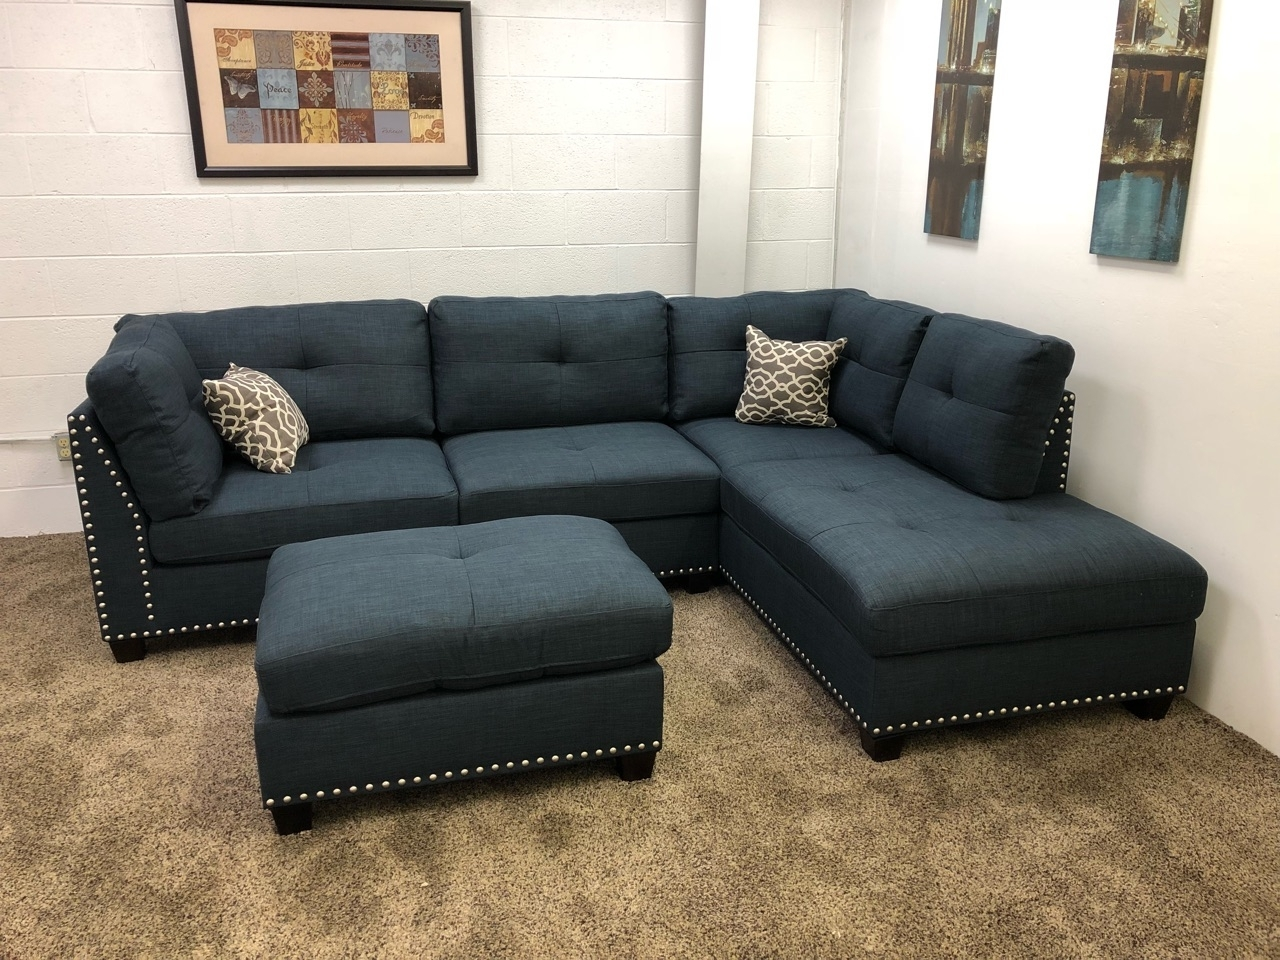 Sectional Sofa W Chaise – 100 Images – Sectionals Sectional Sofas Intended For Sectional Sofas At Barrie (View 3 of 10)